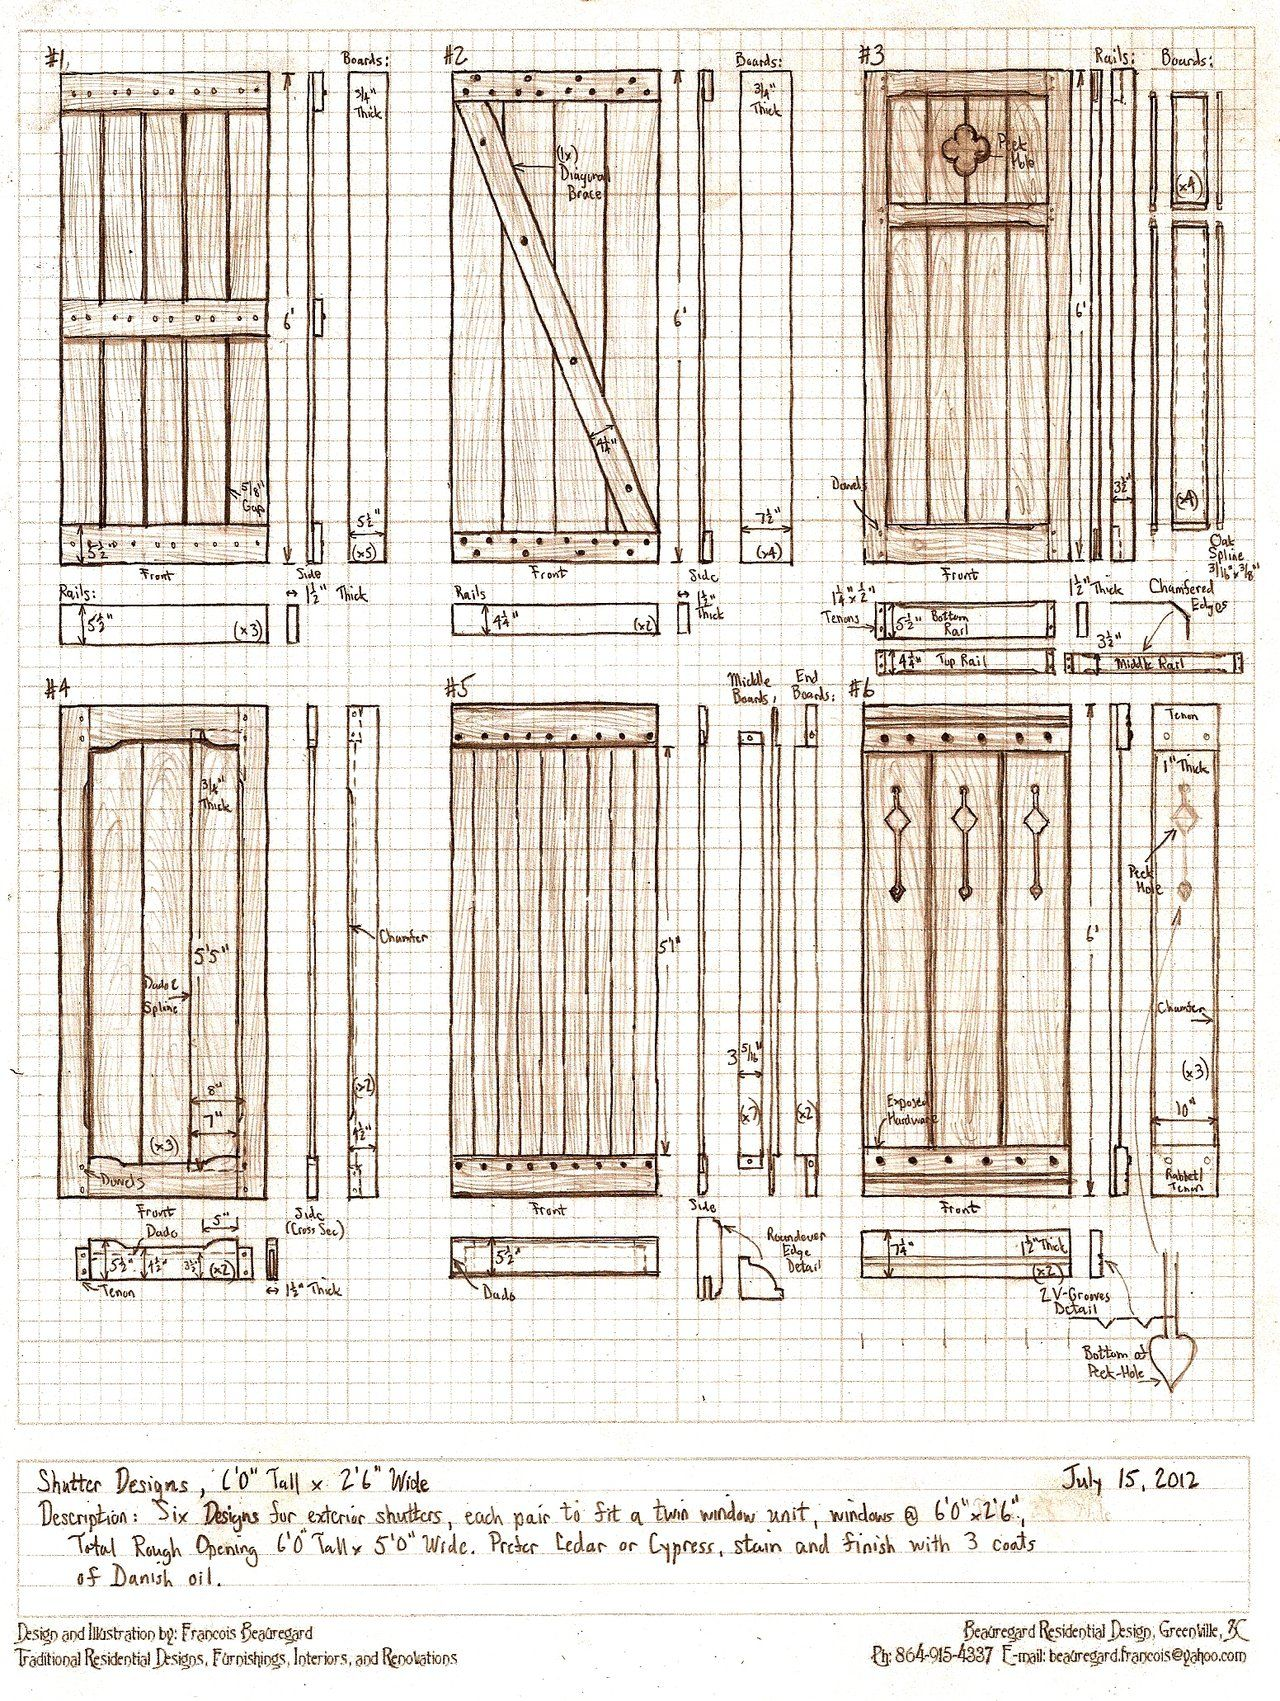 Six Exterior Shutter Designs by Built4ever on DeviantArt